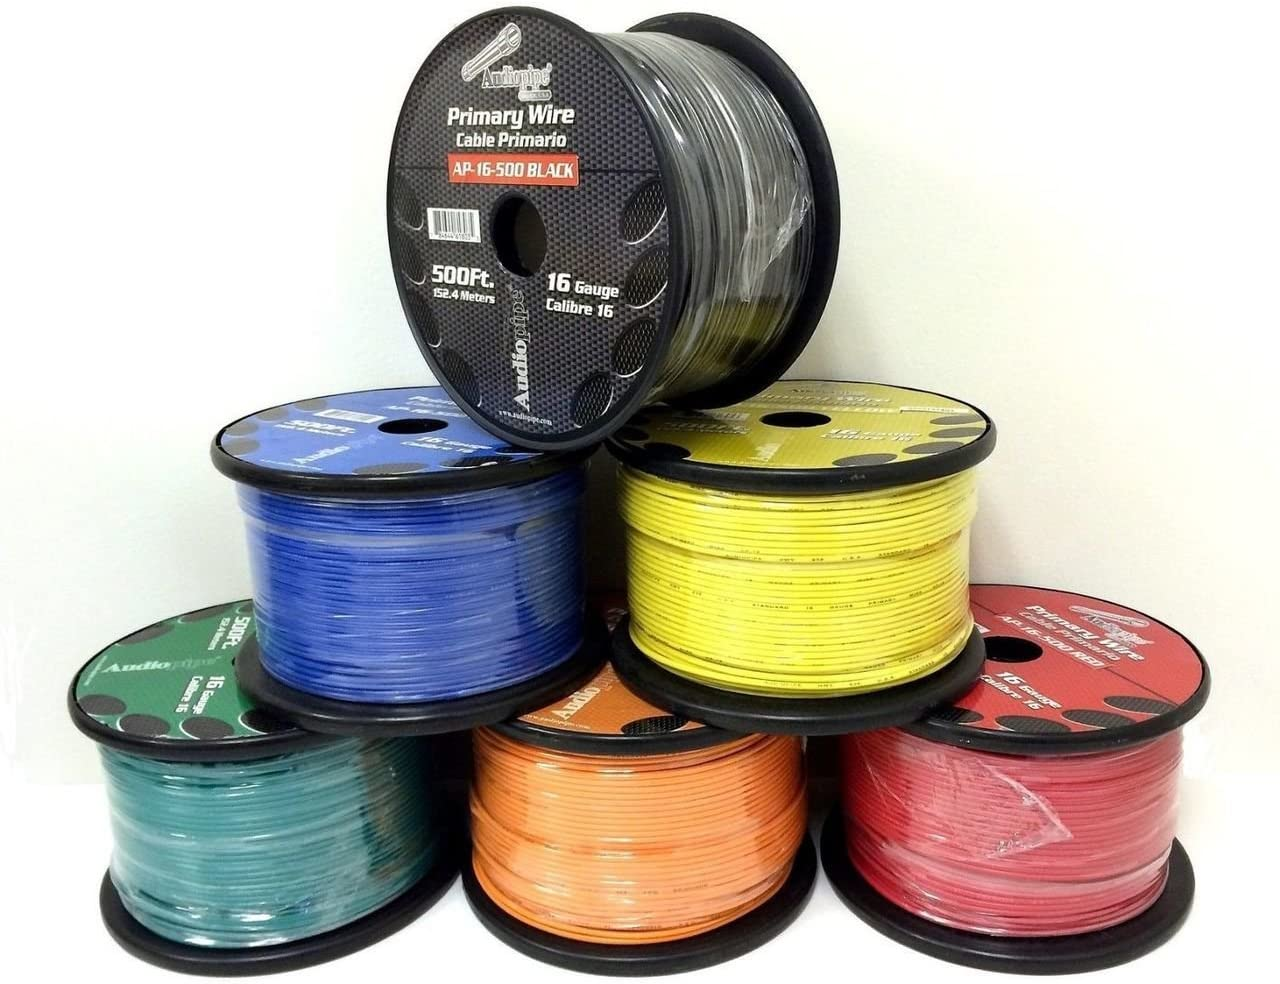 5 Rolls of 16 Gauge - 500' each Audiopipe Car Audio Home Primary Remote Wire 71GhmFFeBmLSL1280_